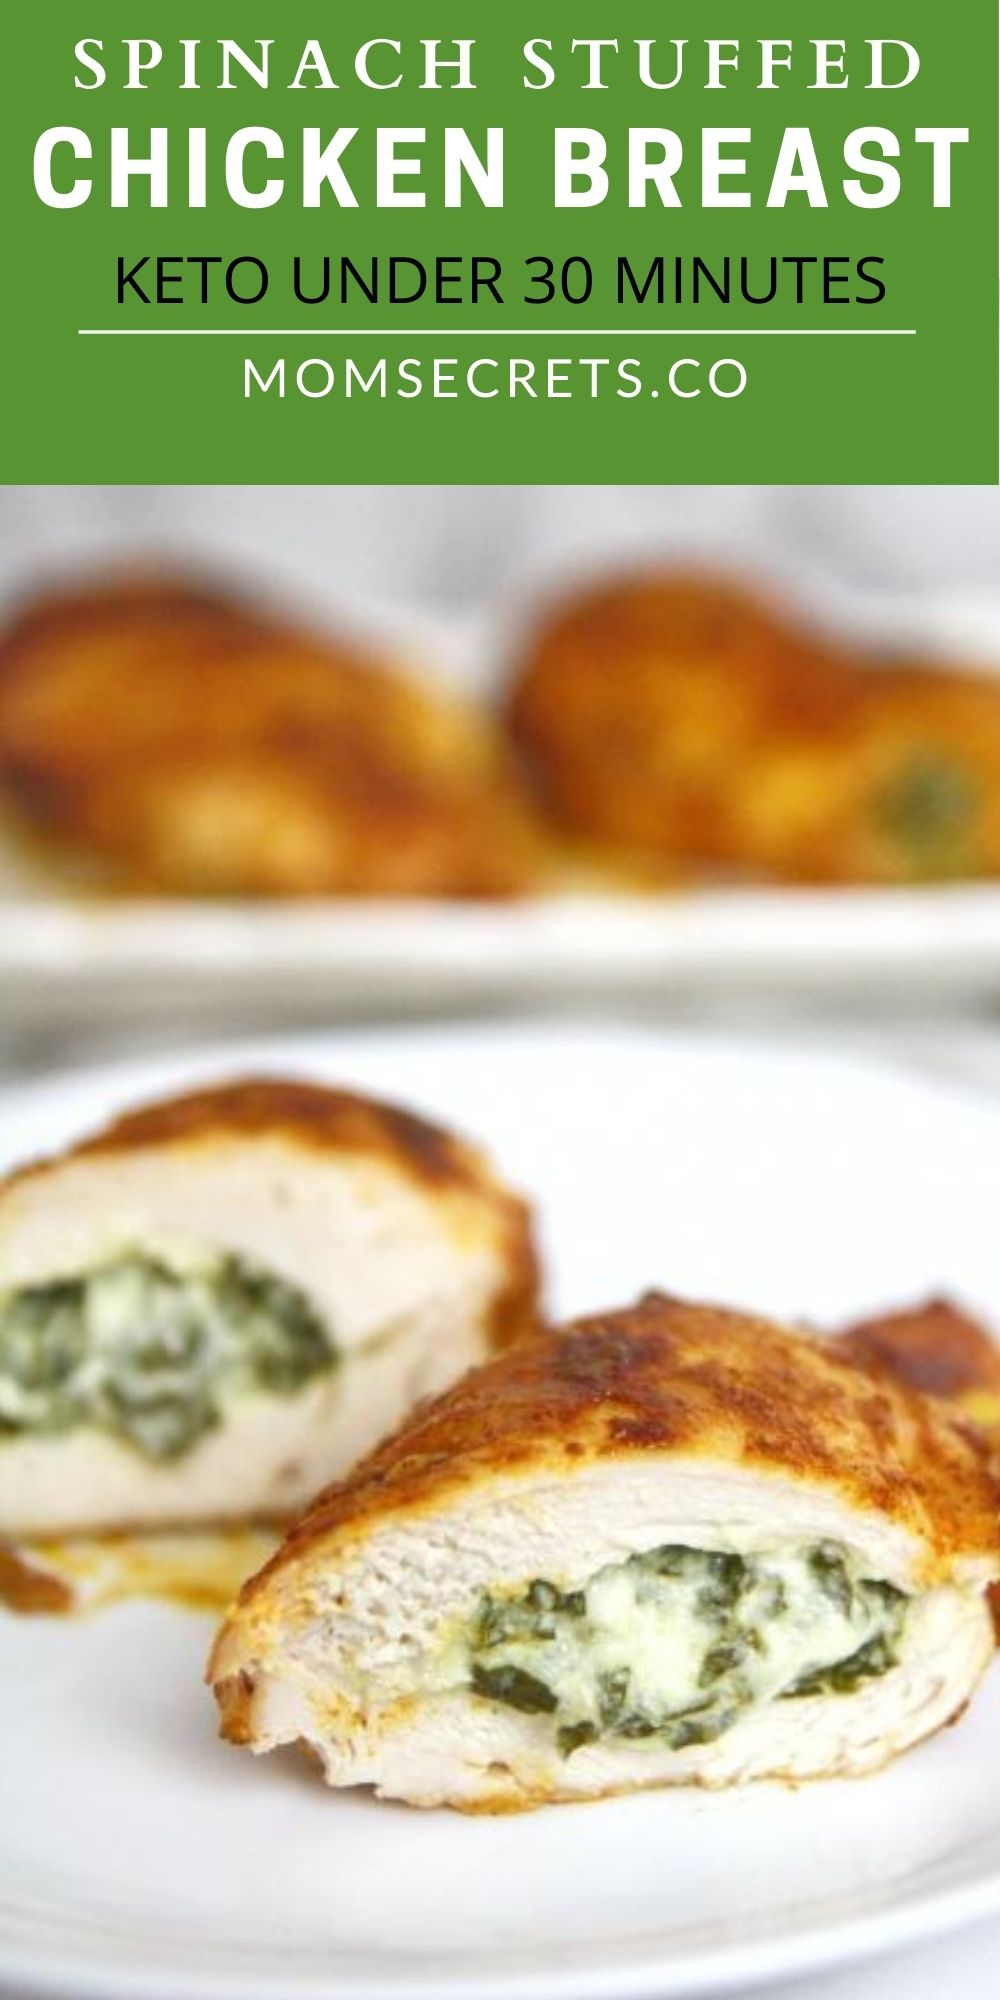 This chicken breast stuffed with cheesy spinach filling baked in the oven is super juicy and tasty. This keto meal is family-friendly and quick to make. #keto #ketodinner #chickenrecipe